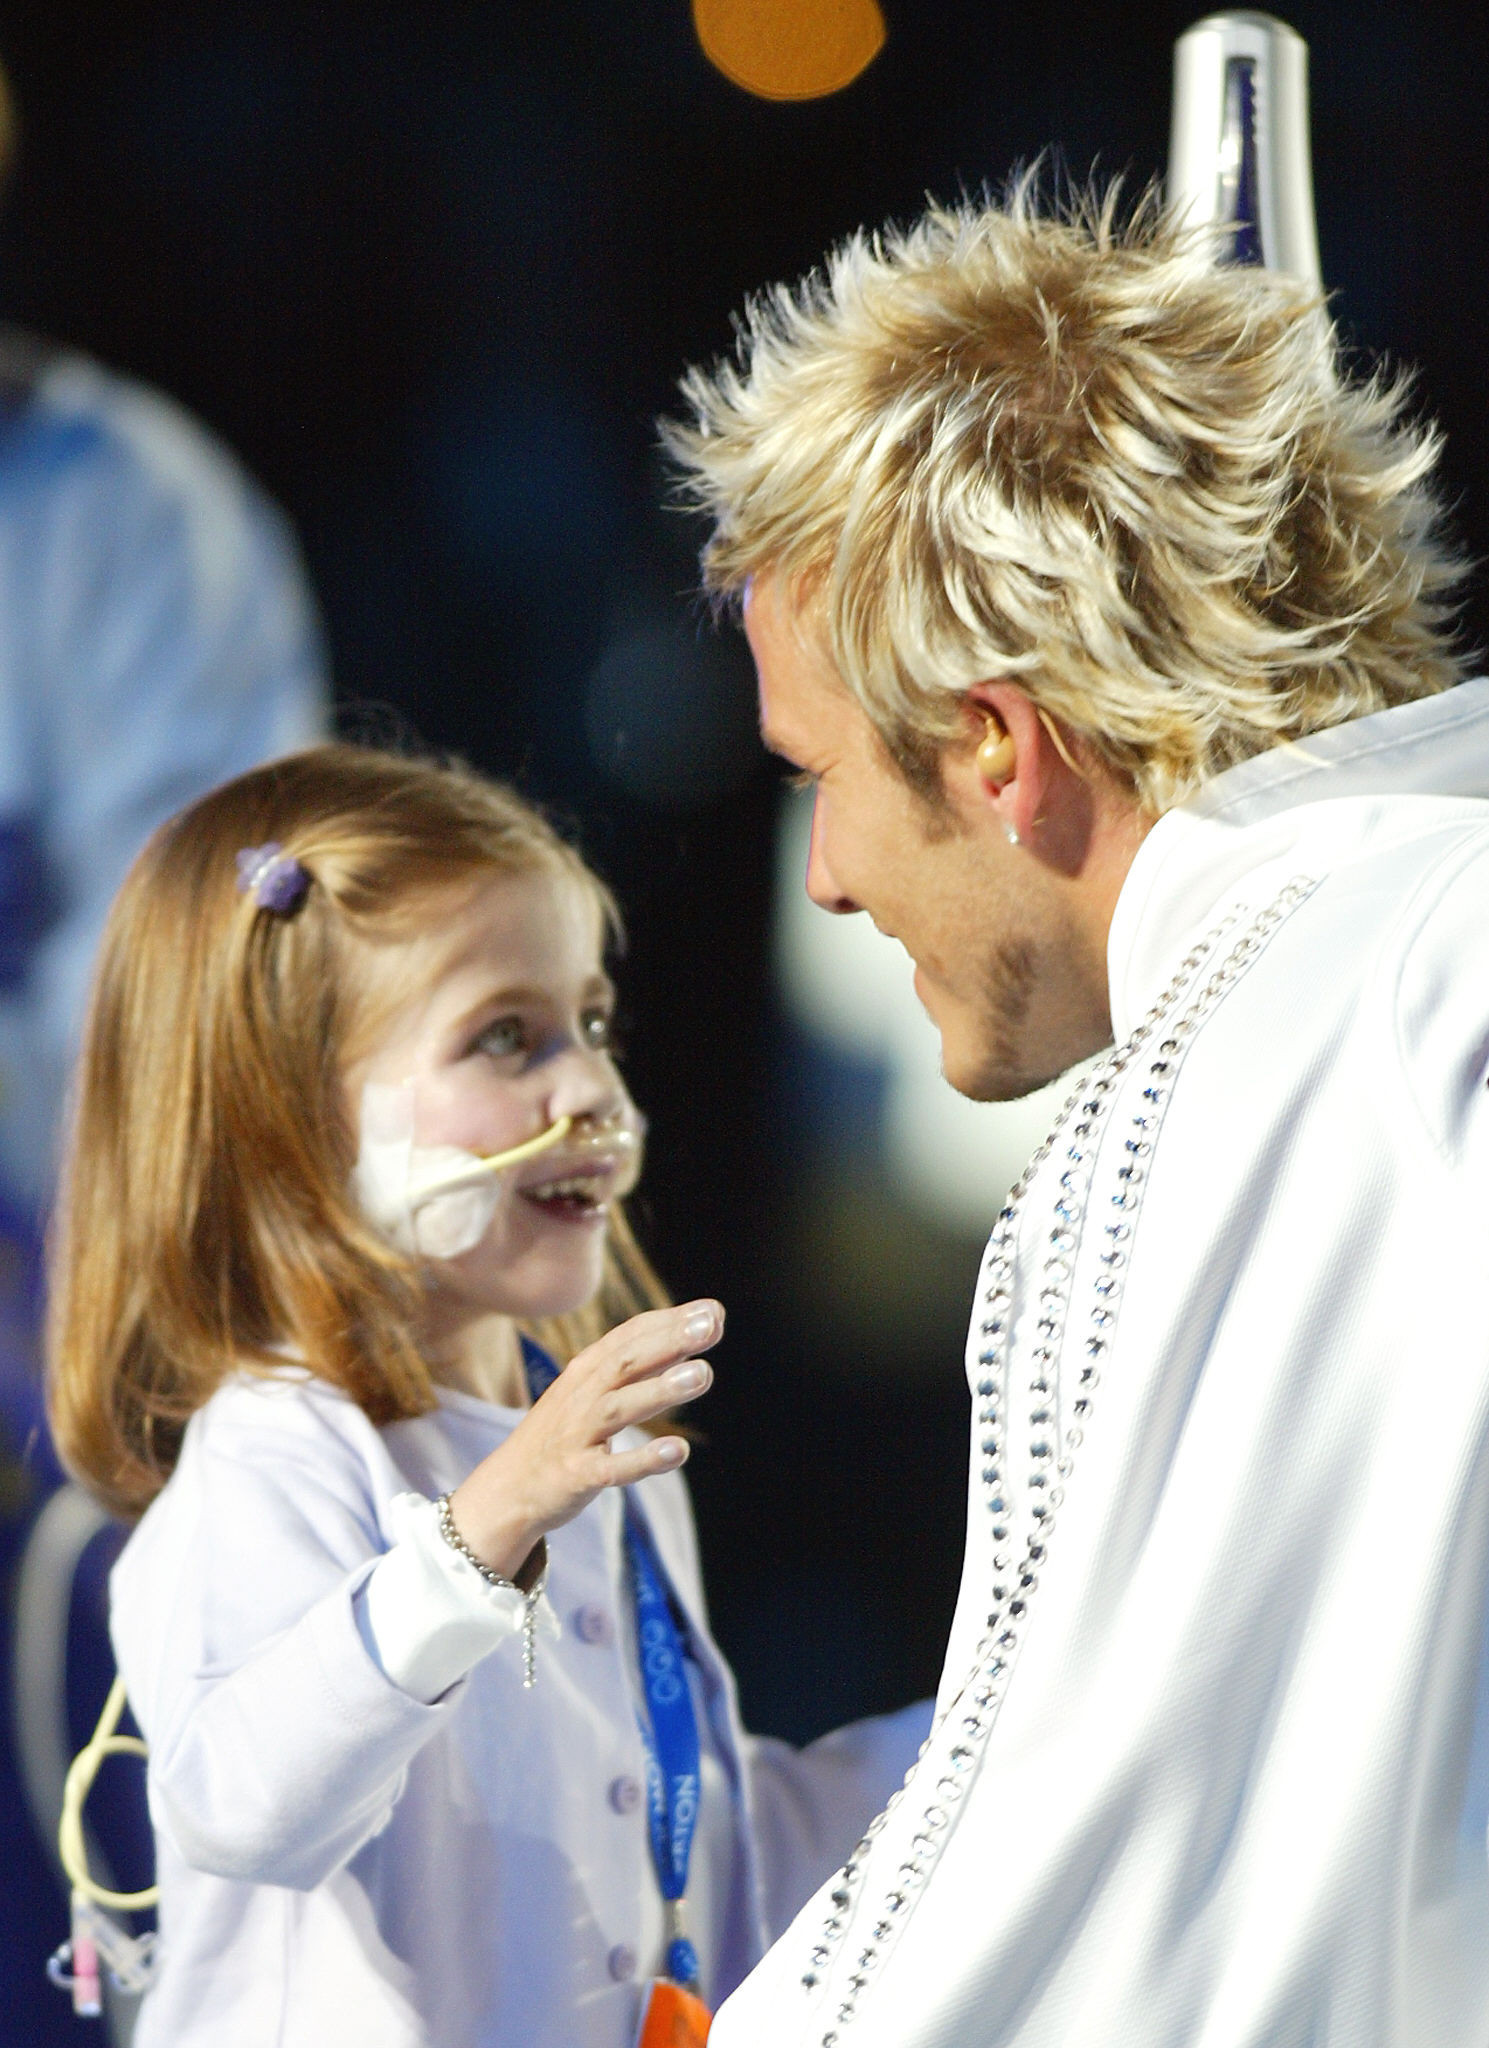 3. David Beckham joins Kirsty Howard for inspirational handover of Baton to Queen at Manchester 2002